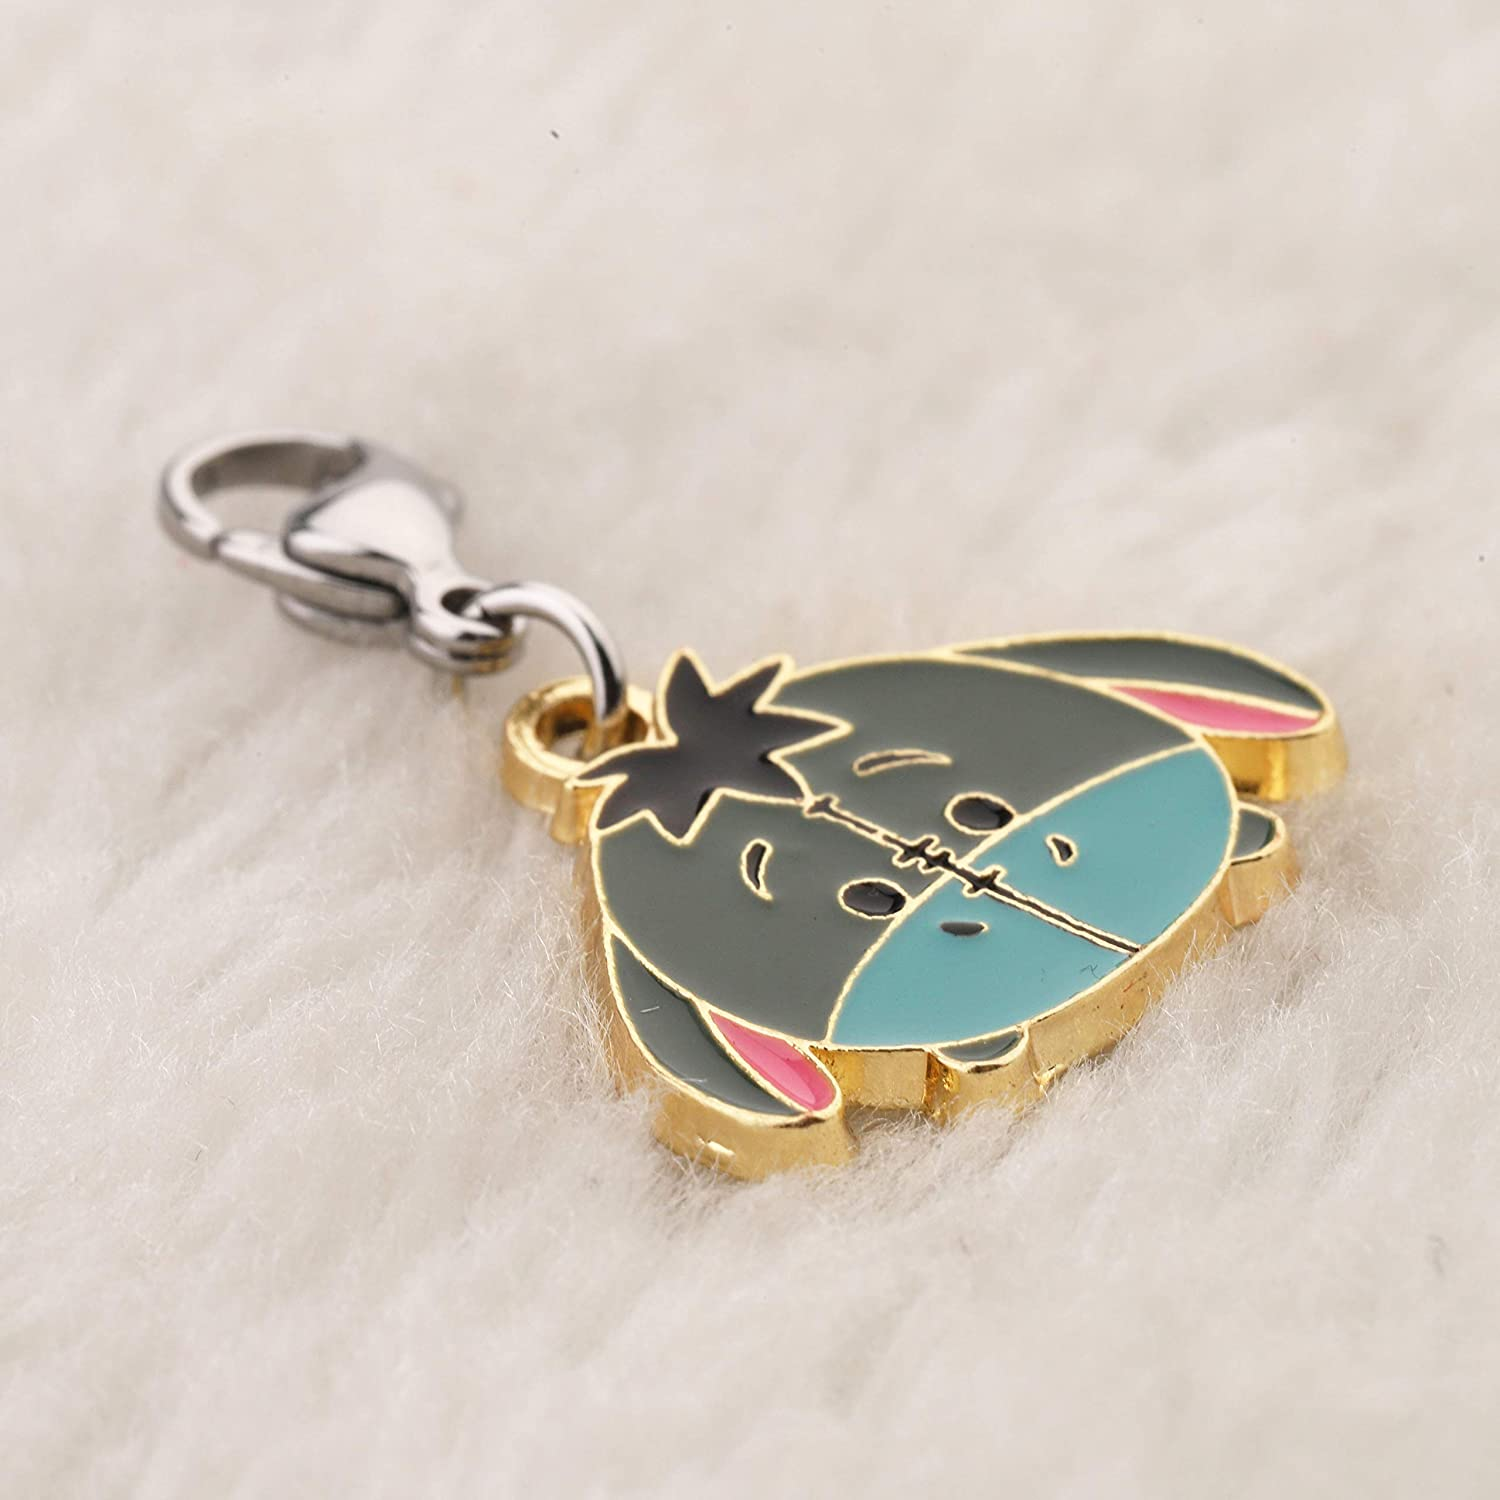 BAUNA Winnie The Pooh Jewelry Eeyore Charm with Lobster Clasp Zipper Pull for Purse Wallets Keys